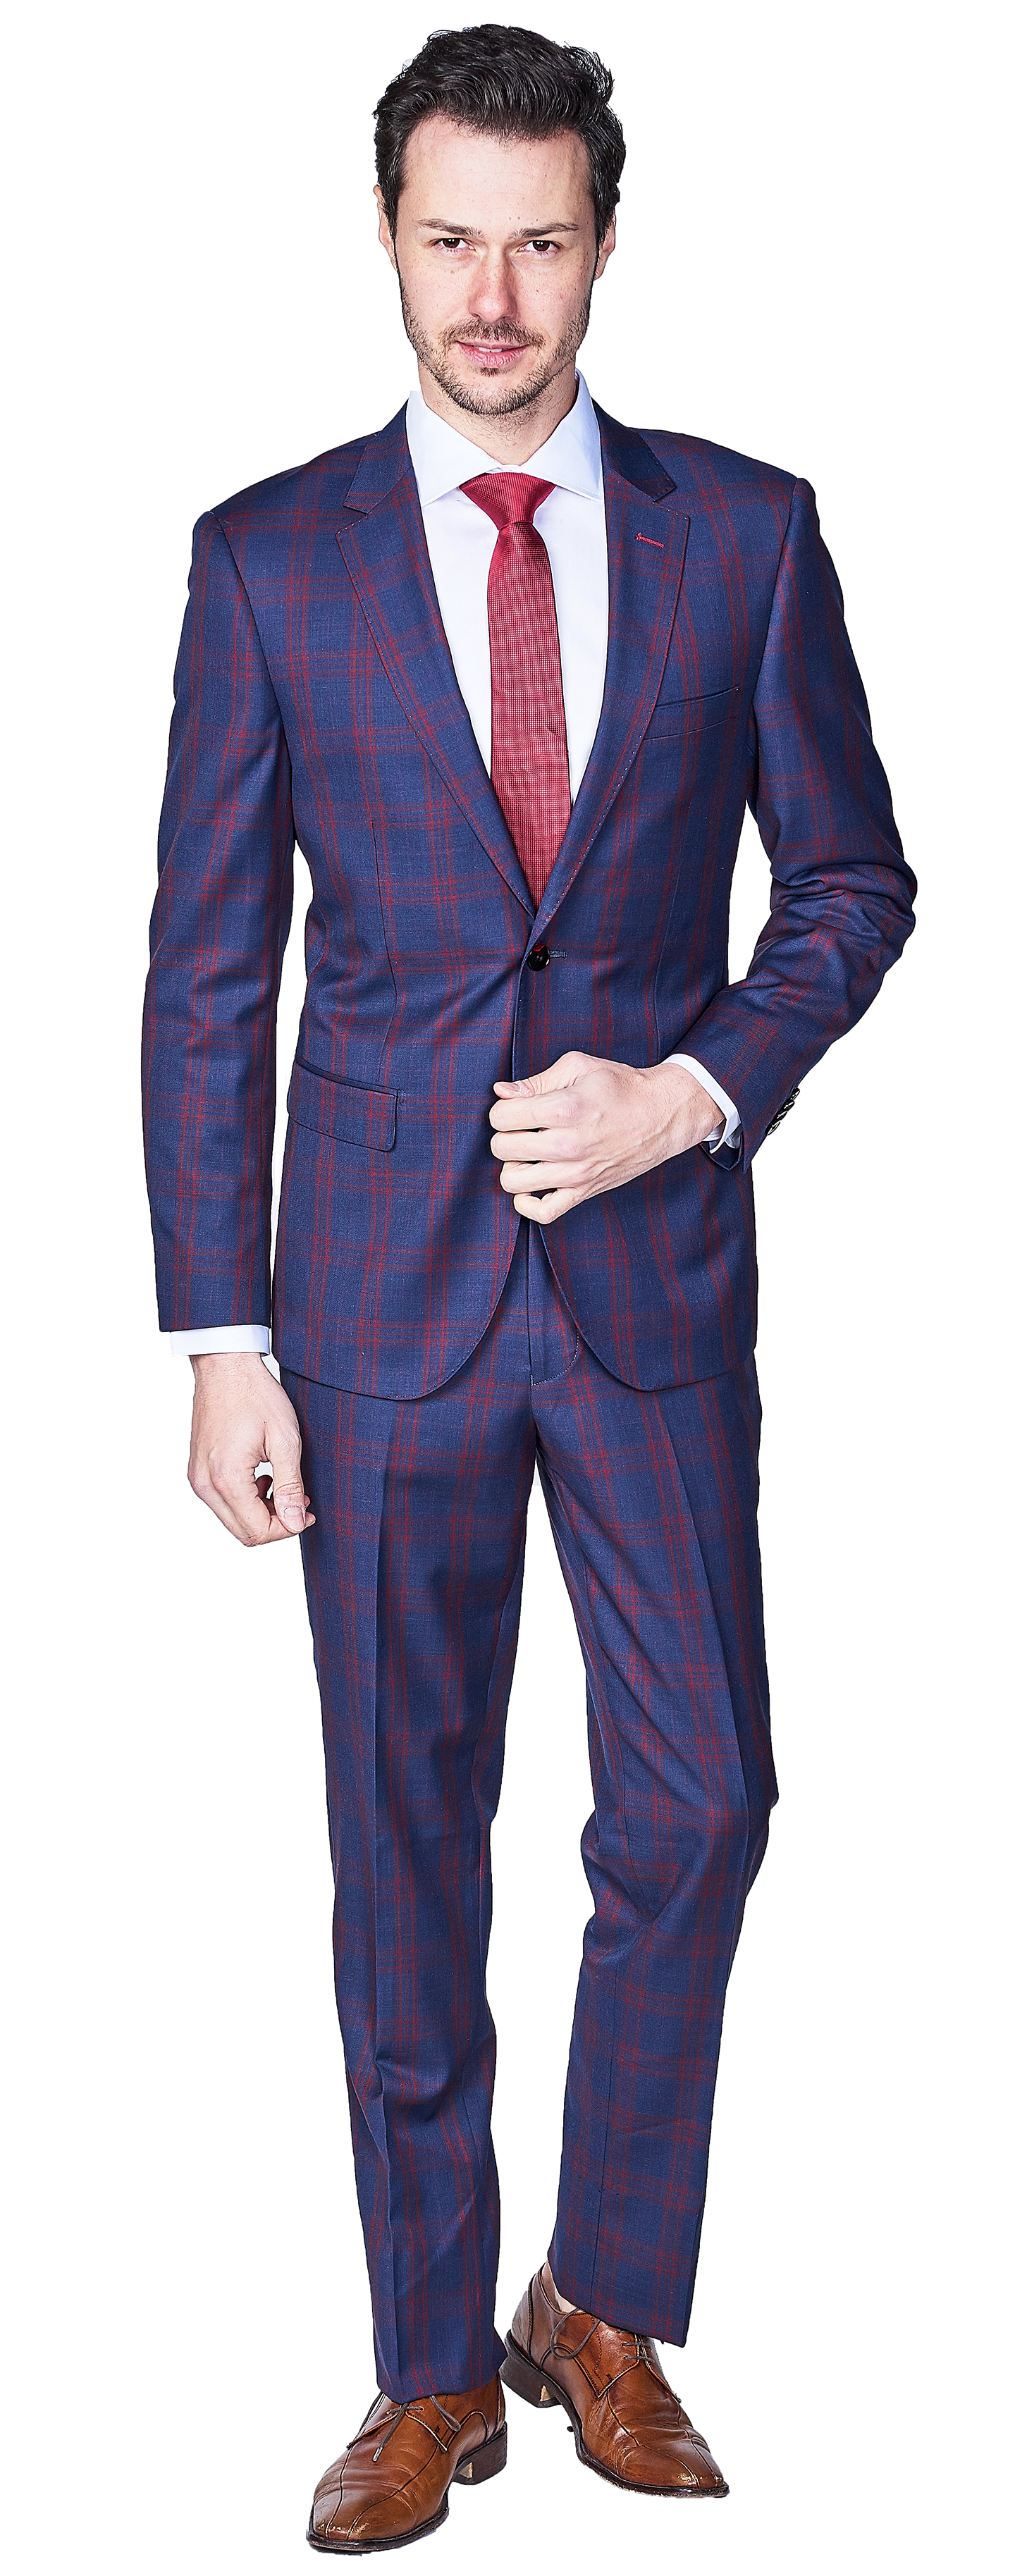 Giovanni Bresciani Navy red check SuitGB-265$850.00 USD.png